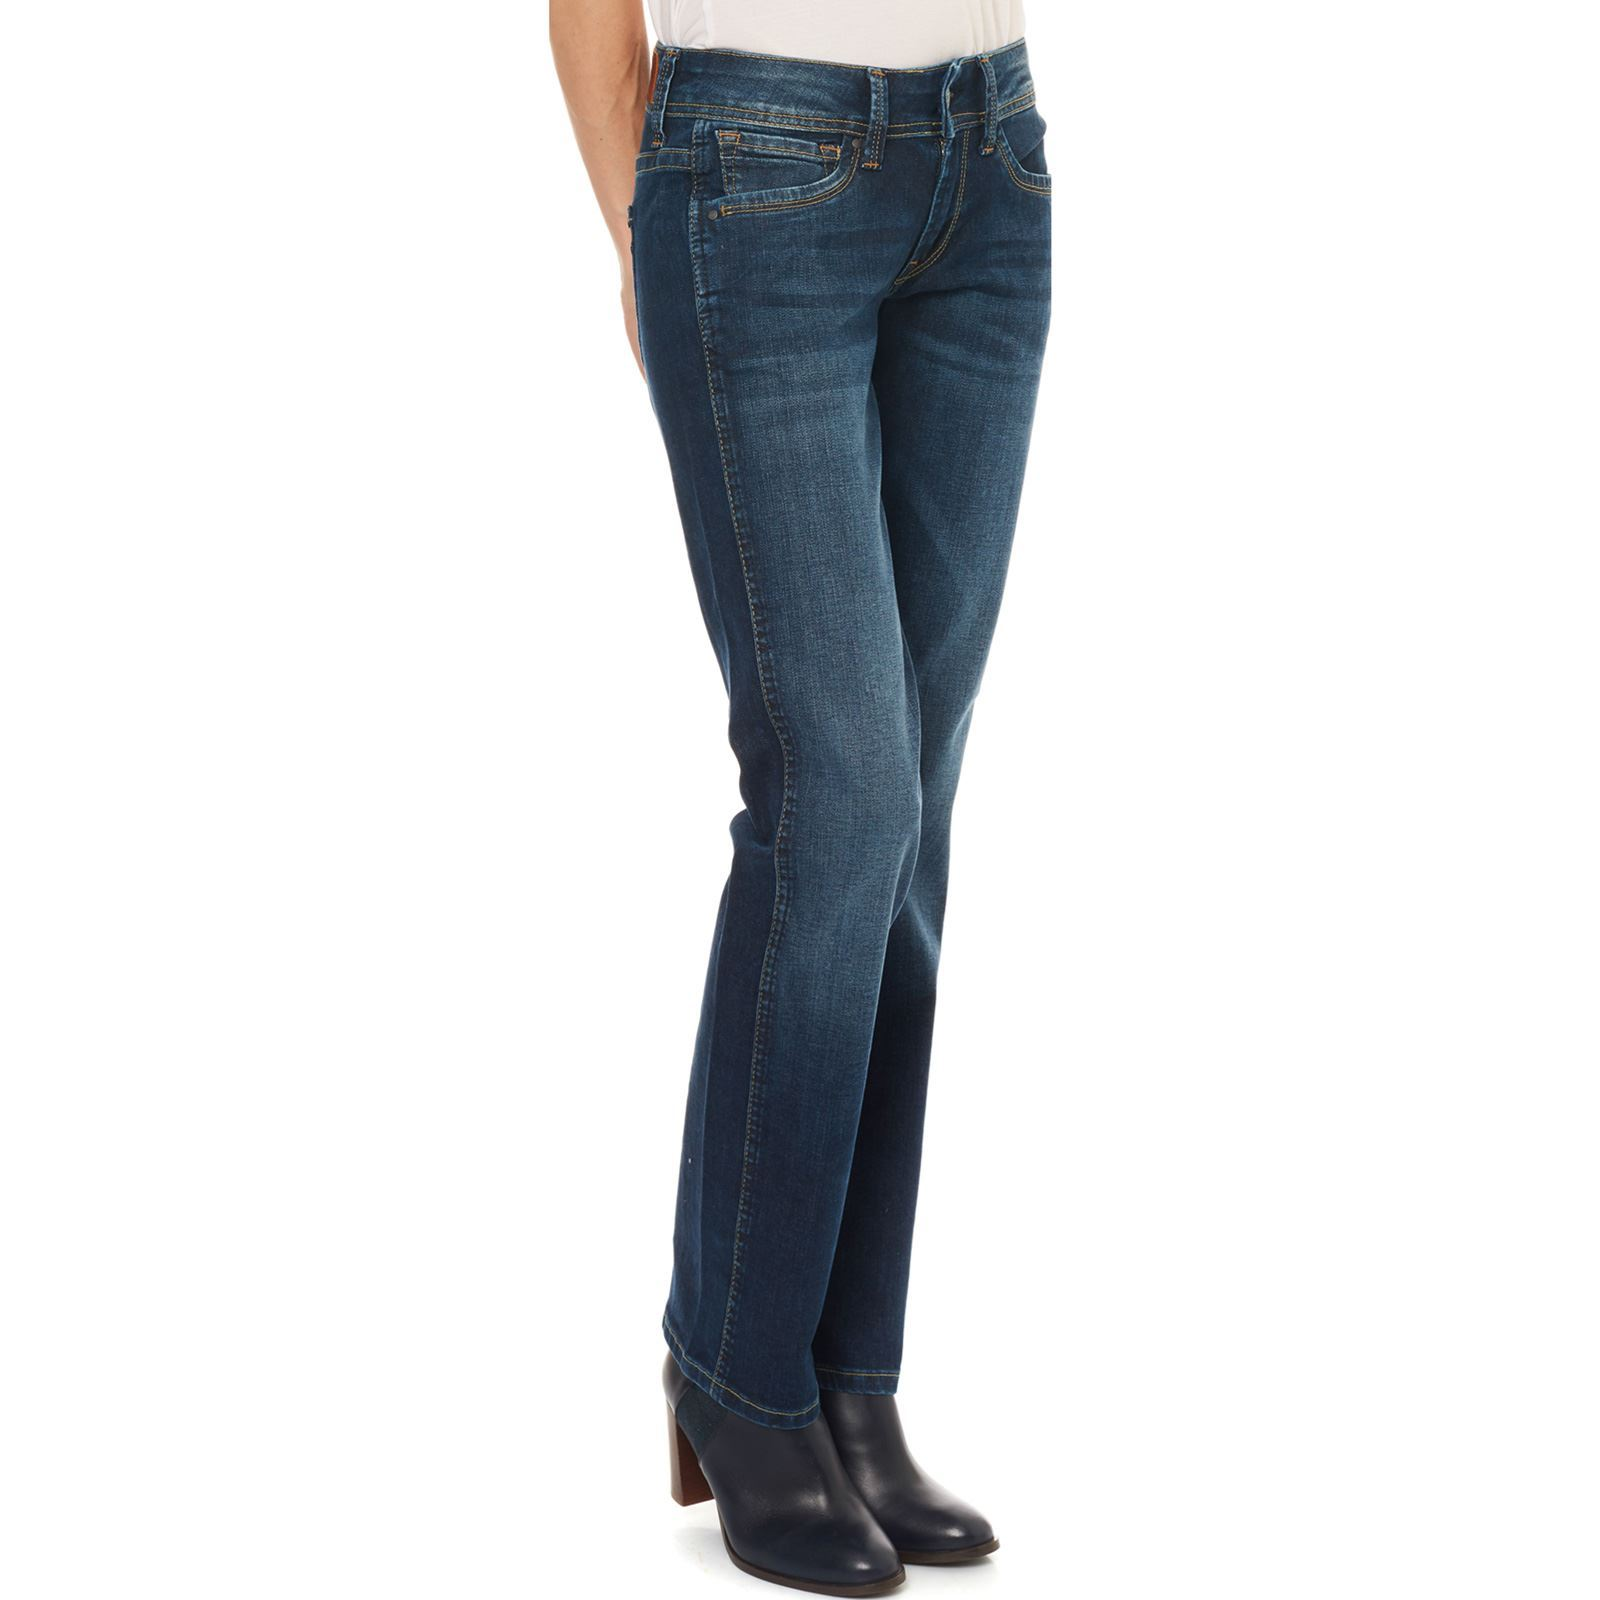 Relaxed Olympia Jean Jeans London Bleu Pepe PxwYq8pSBx